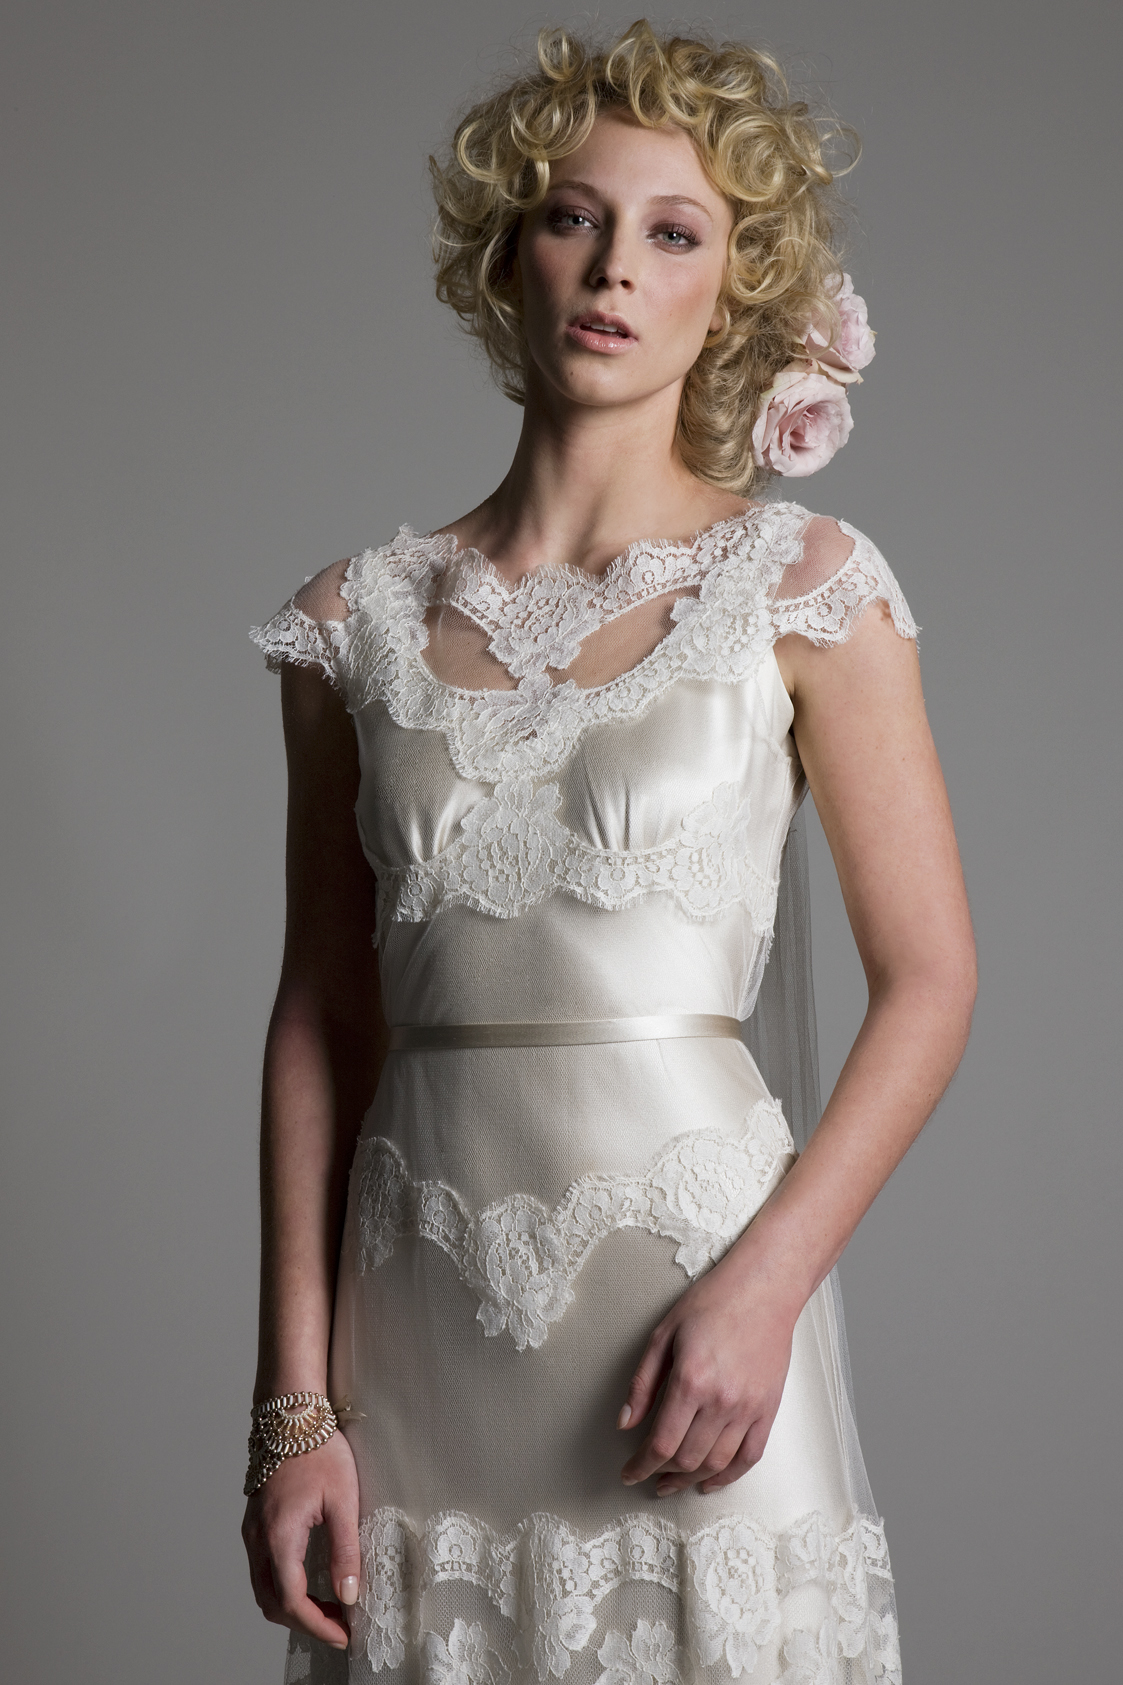 Detailed view of the Emily Tulle and French Lace Dress with Narrow Belt Bridal Wedding Dress by Halfpenny London